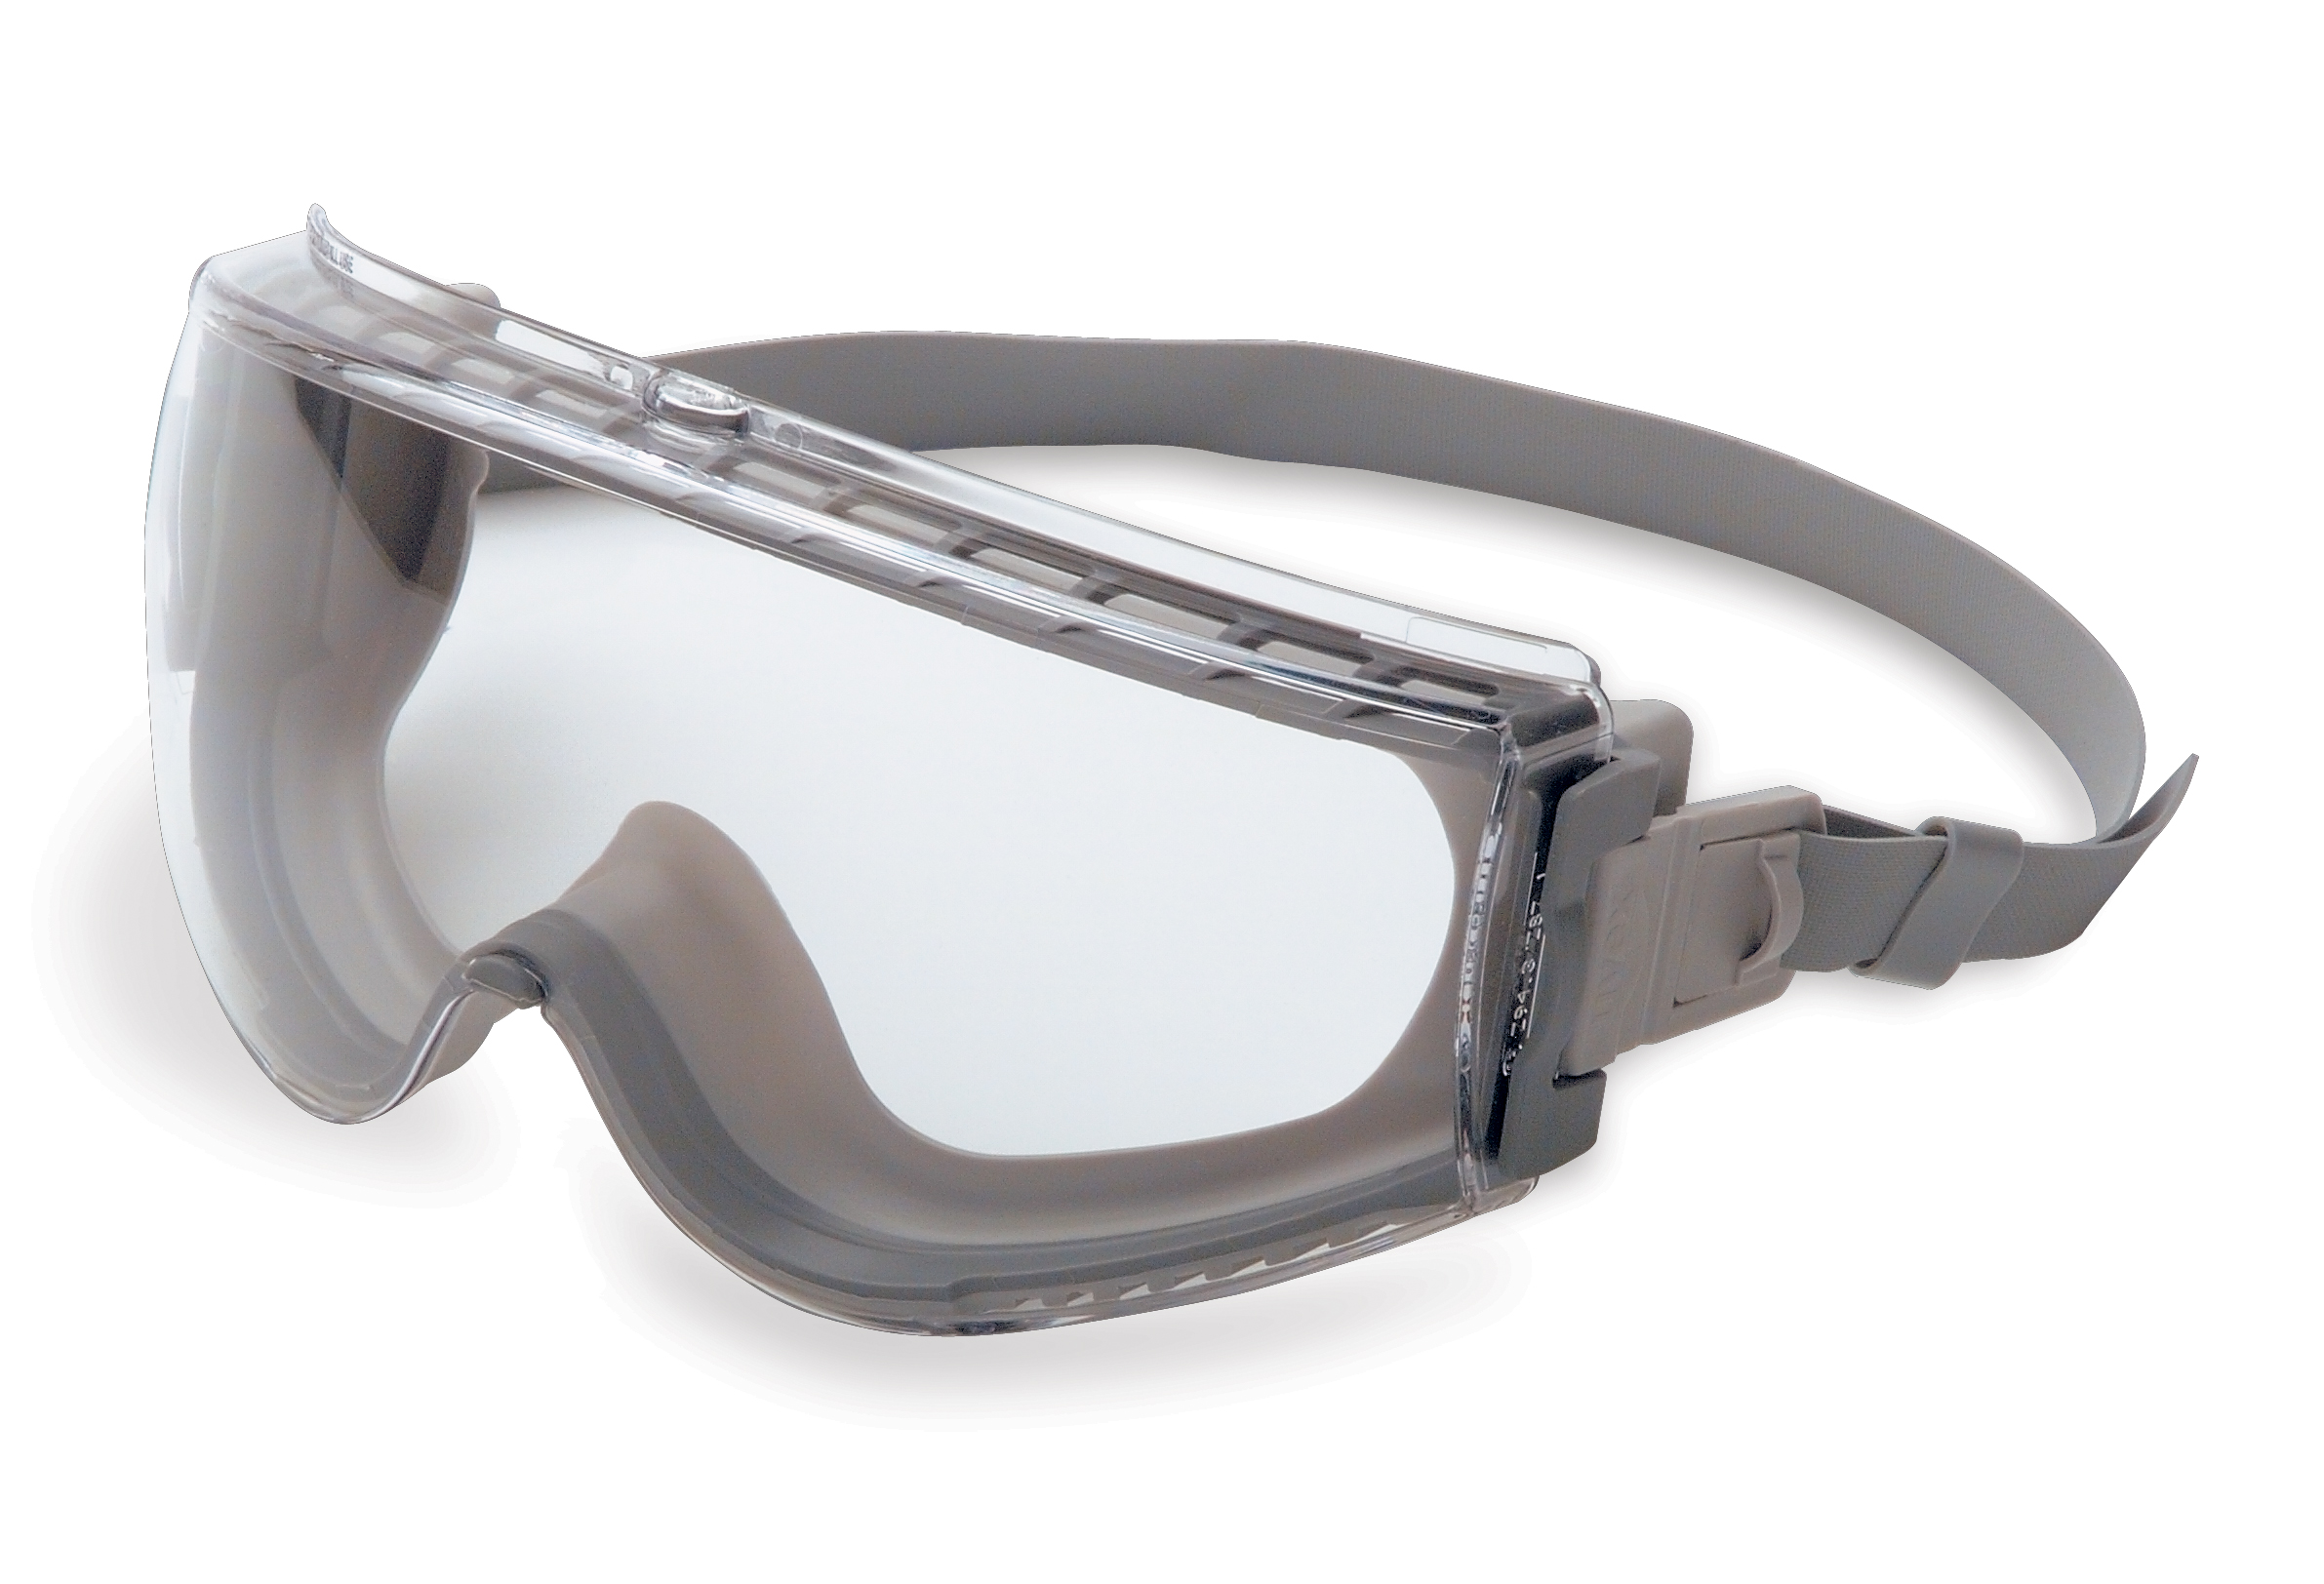 ce49bf83cea Uvex S3960C Stealth® Safety Goggles - Clear Lens